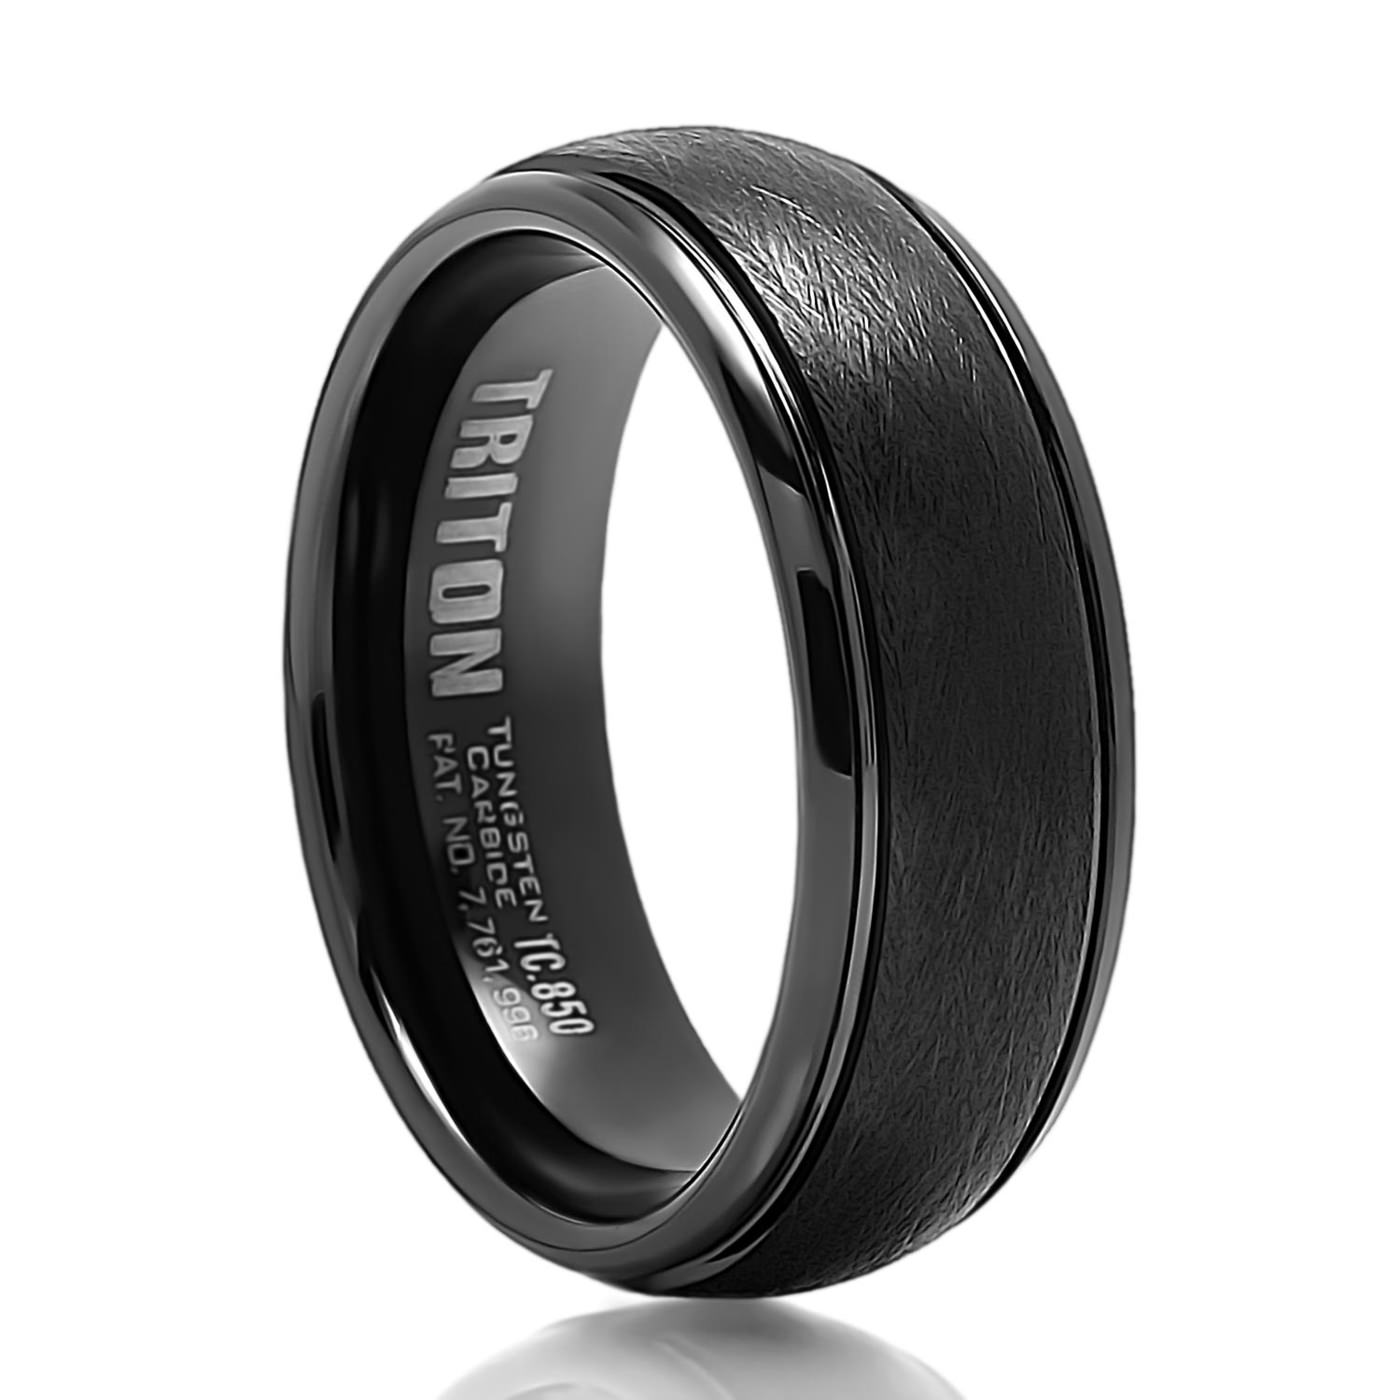 carbon titanium black fiber amazon dp rings men com band beveled wedding ring mens s inlay edges and